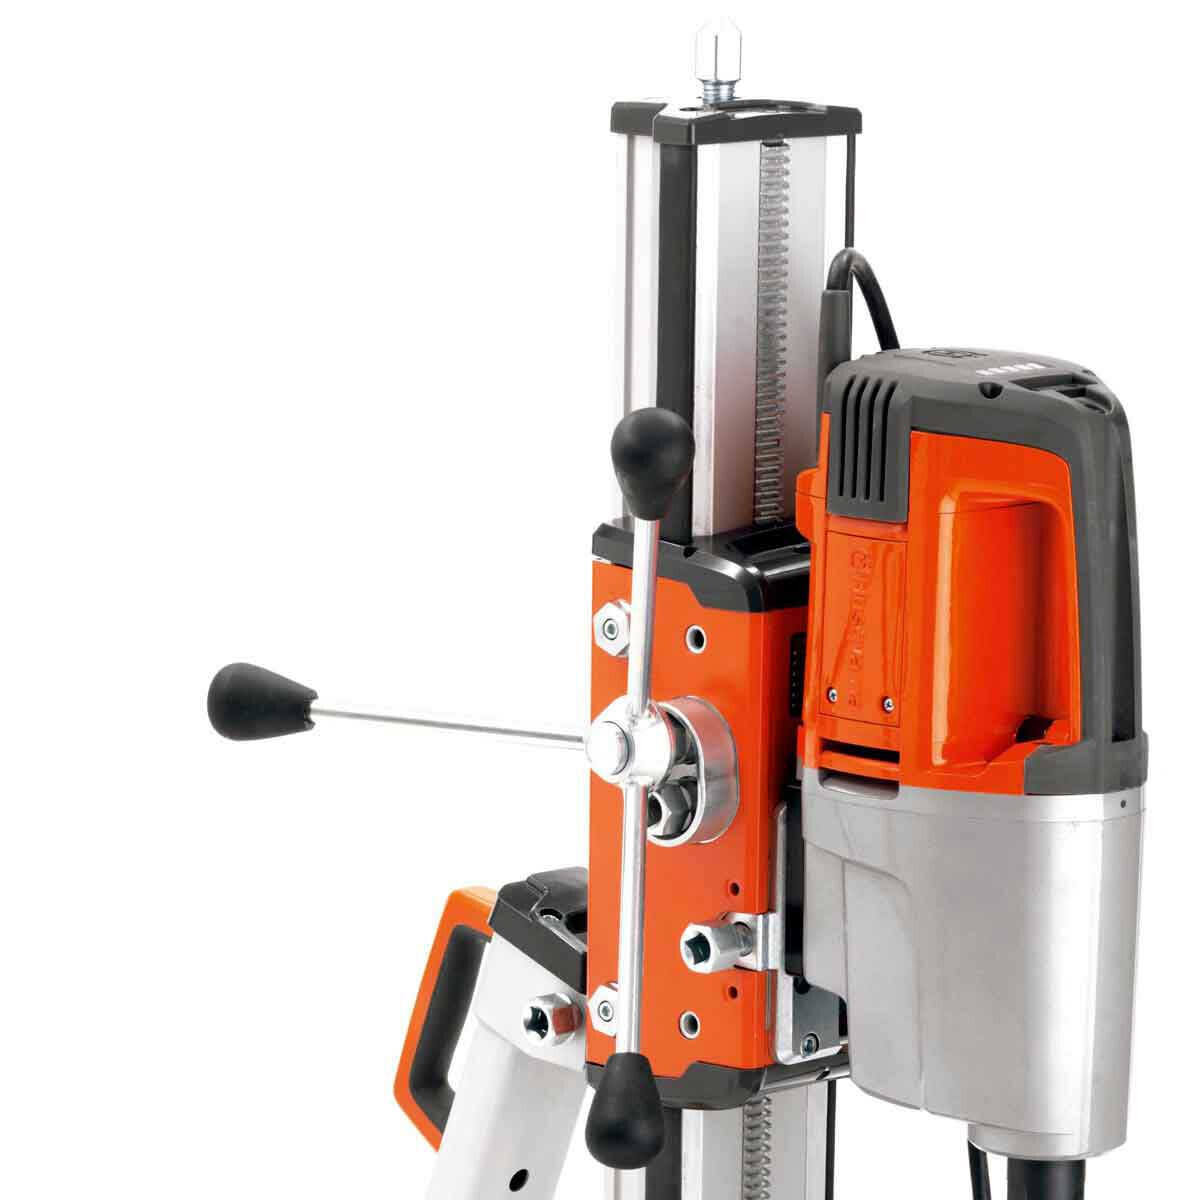 Husqvarna DMS 280 Core Drill base